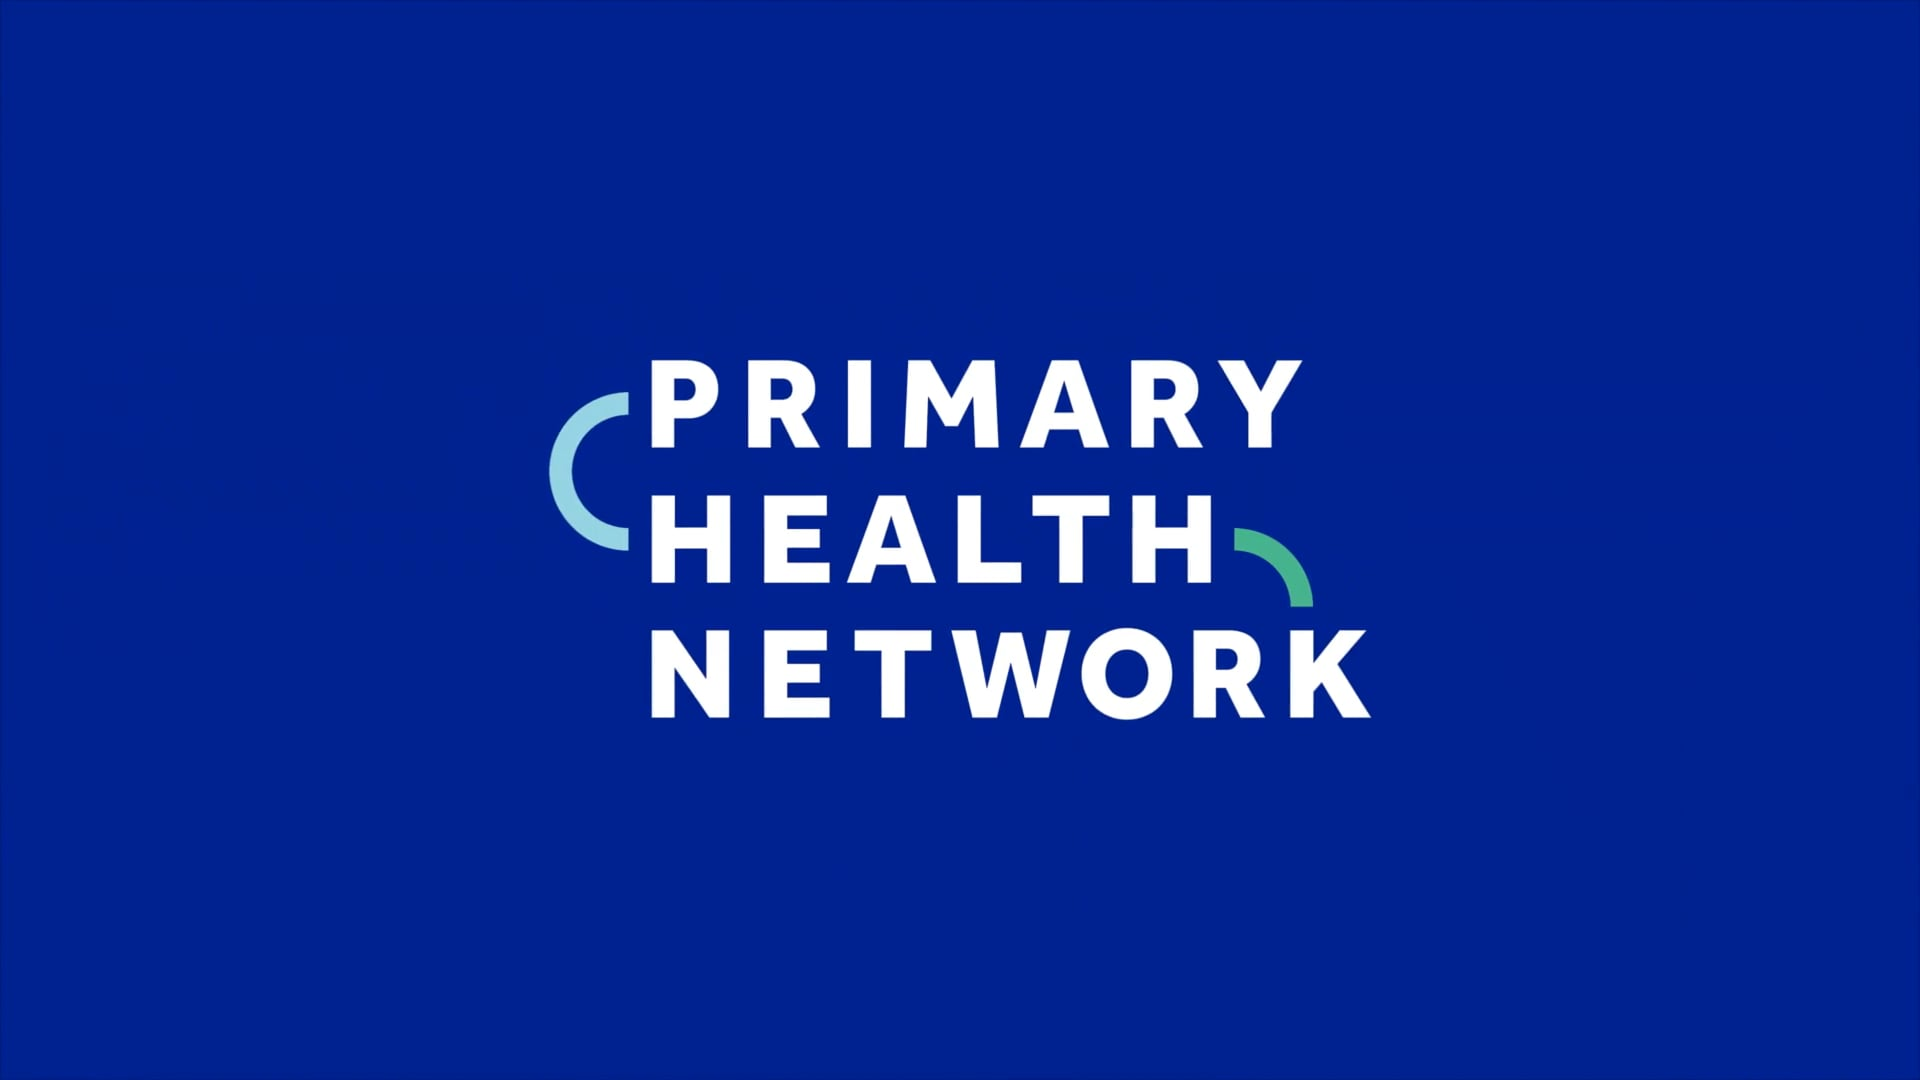 Primary Health Network - About Us